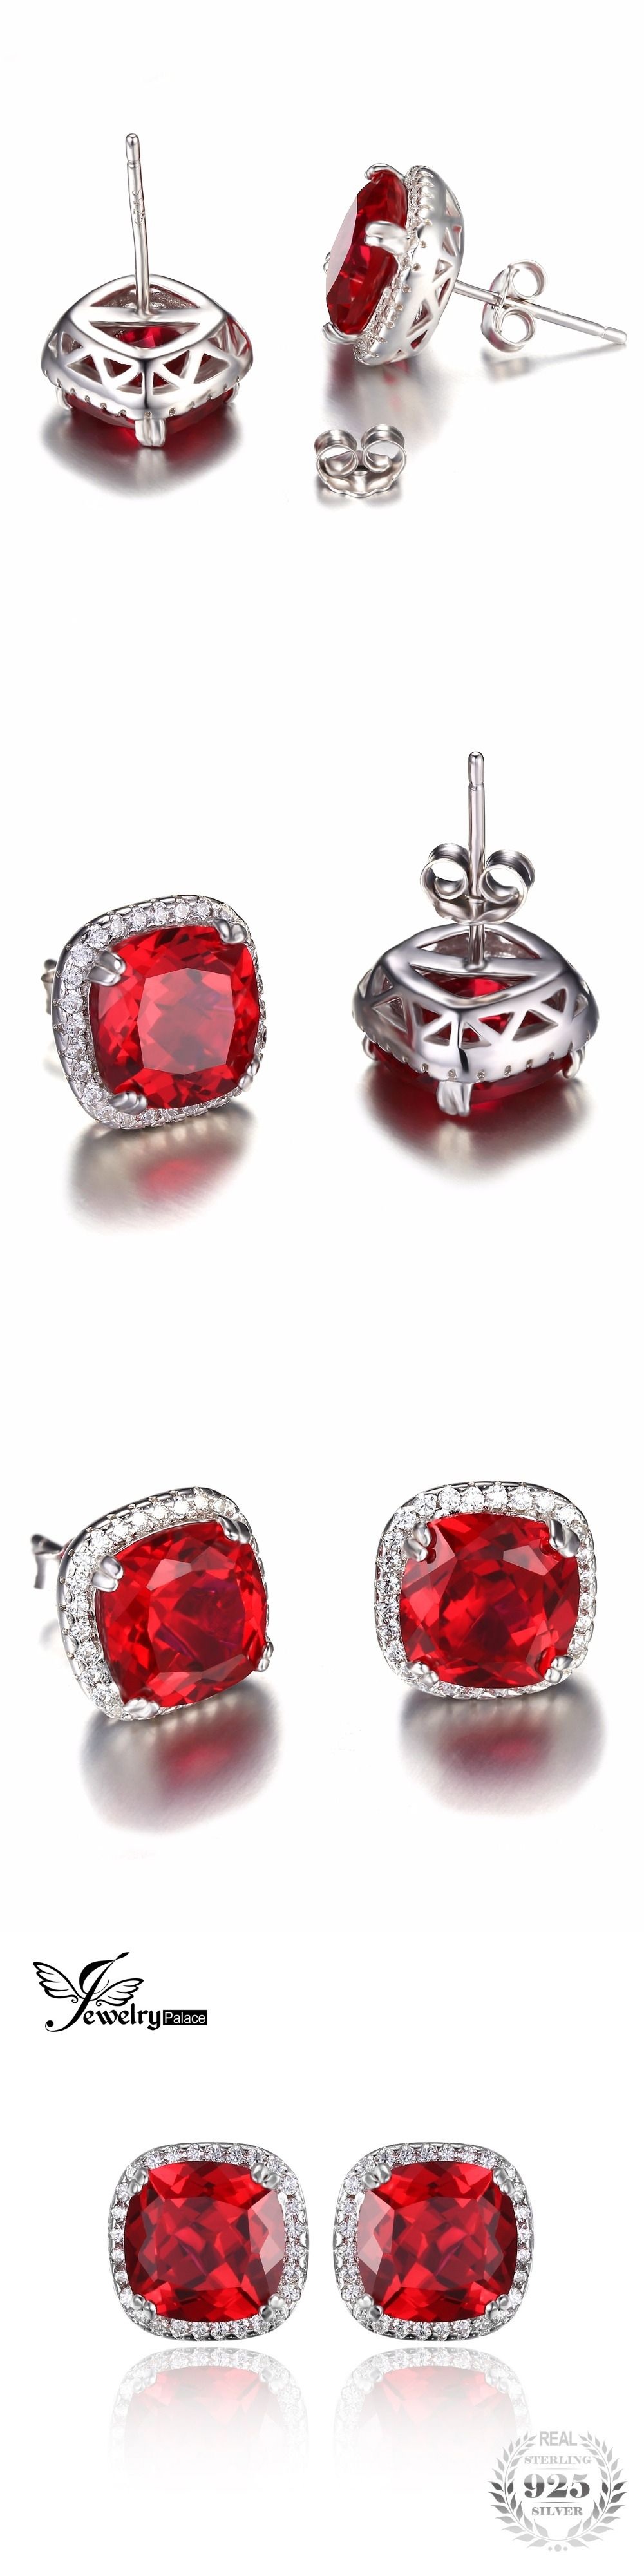 cz diamond deco earrings oval ruby halo baguette carat studs cubic stud vintage zirconia inspired cut red products faux cluster chrisalee